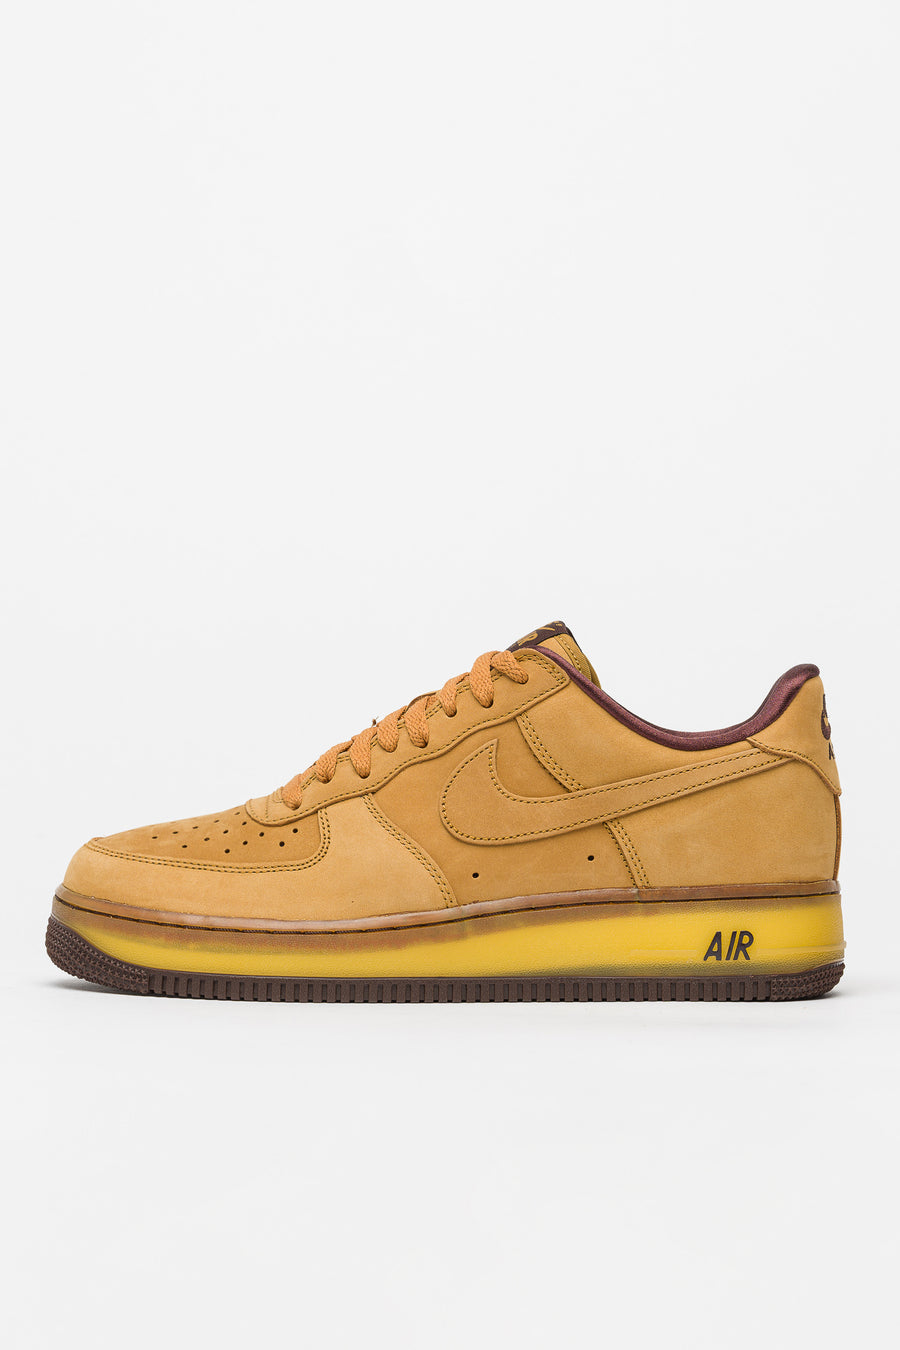 Air Force 1 Low Retro SP in Wheat